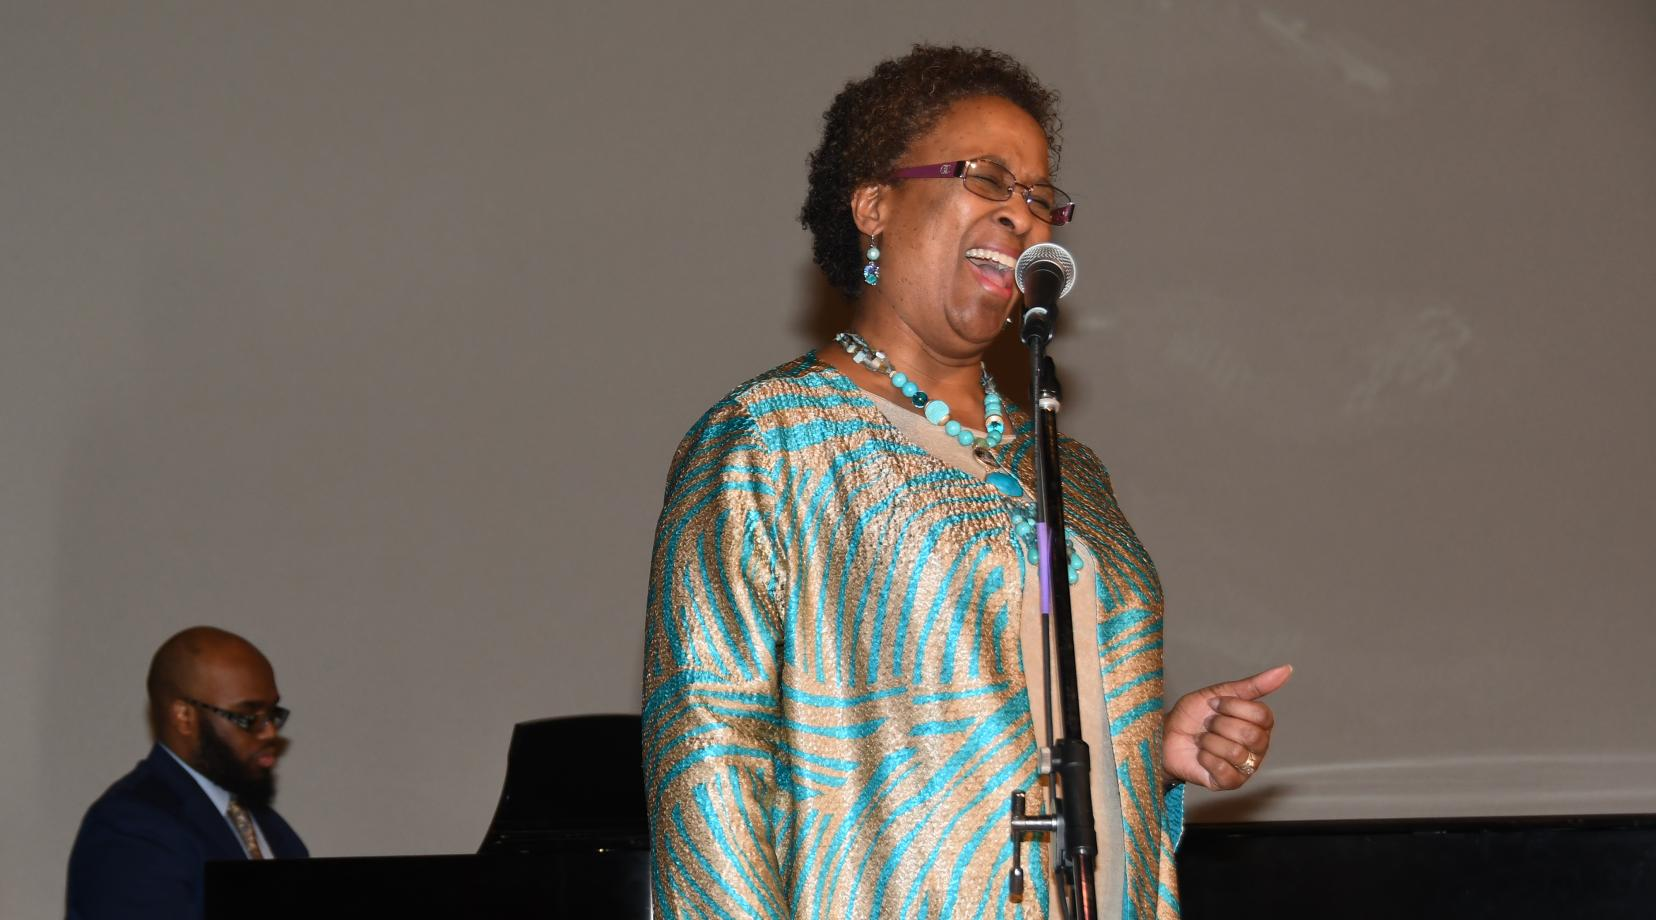 <p>Dr. Marsha Horton, dean of the College of Health and Behavioral Sciences, puts on her music hat metaphorically and sings the National Anthem during the 33rd annual Martin Luther King Jr. National Holiday Program on campus. Photos by Judlin Pierre</p>